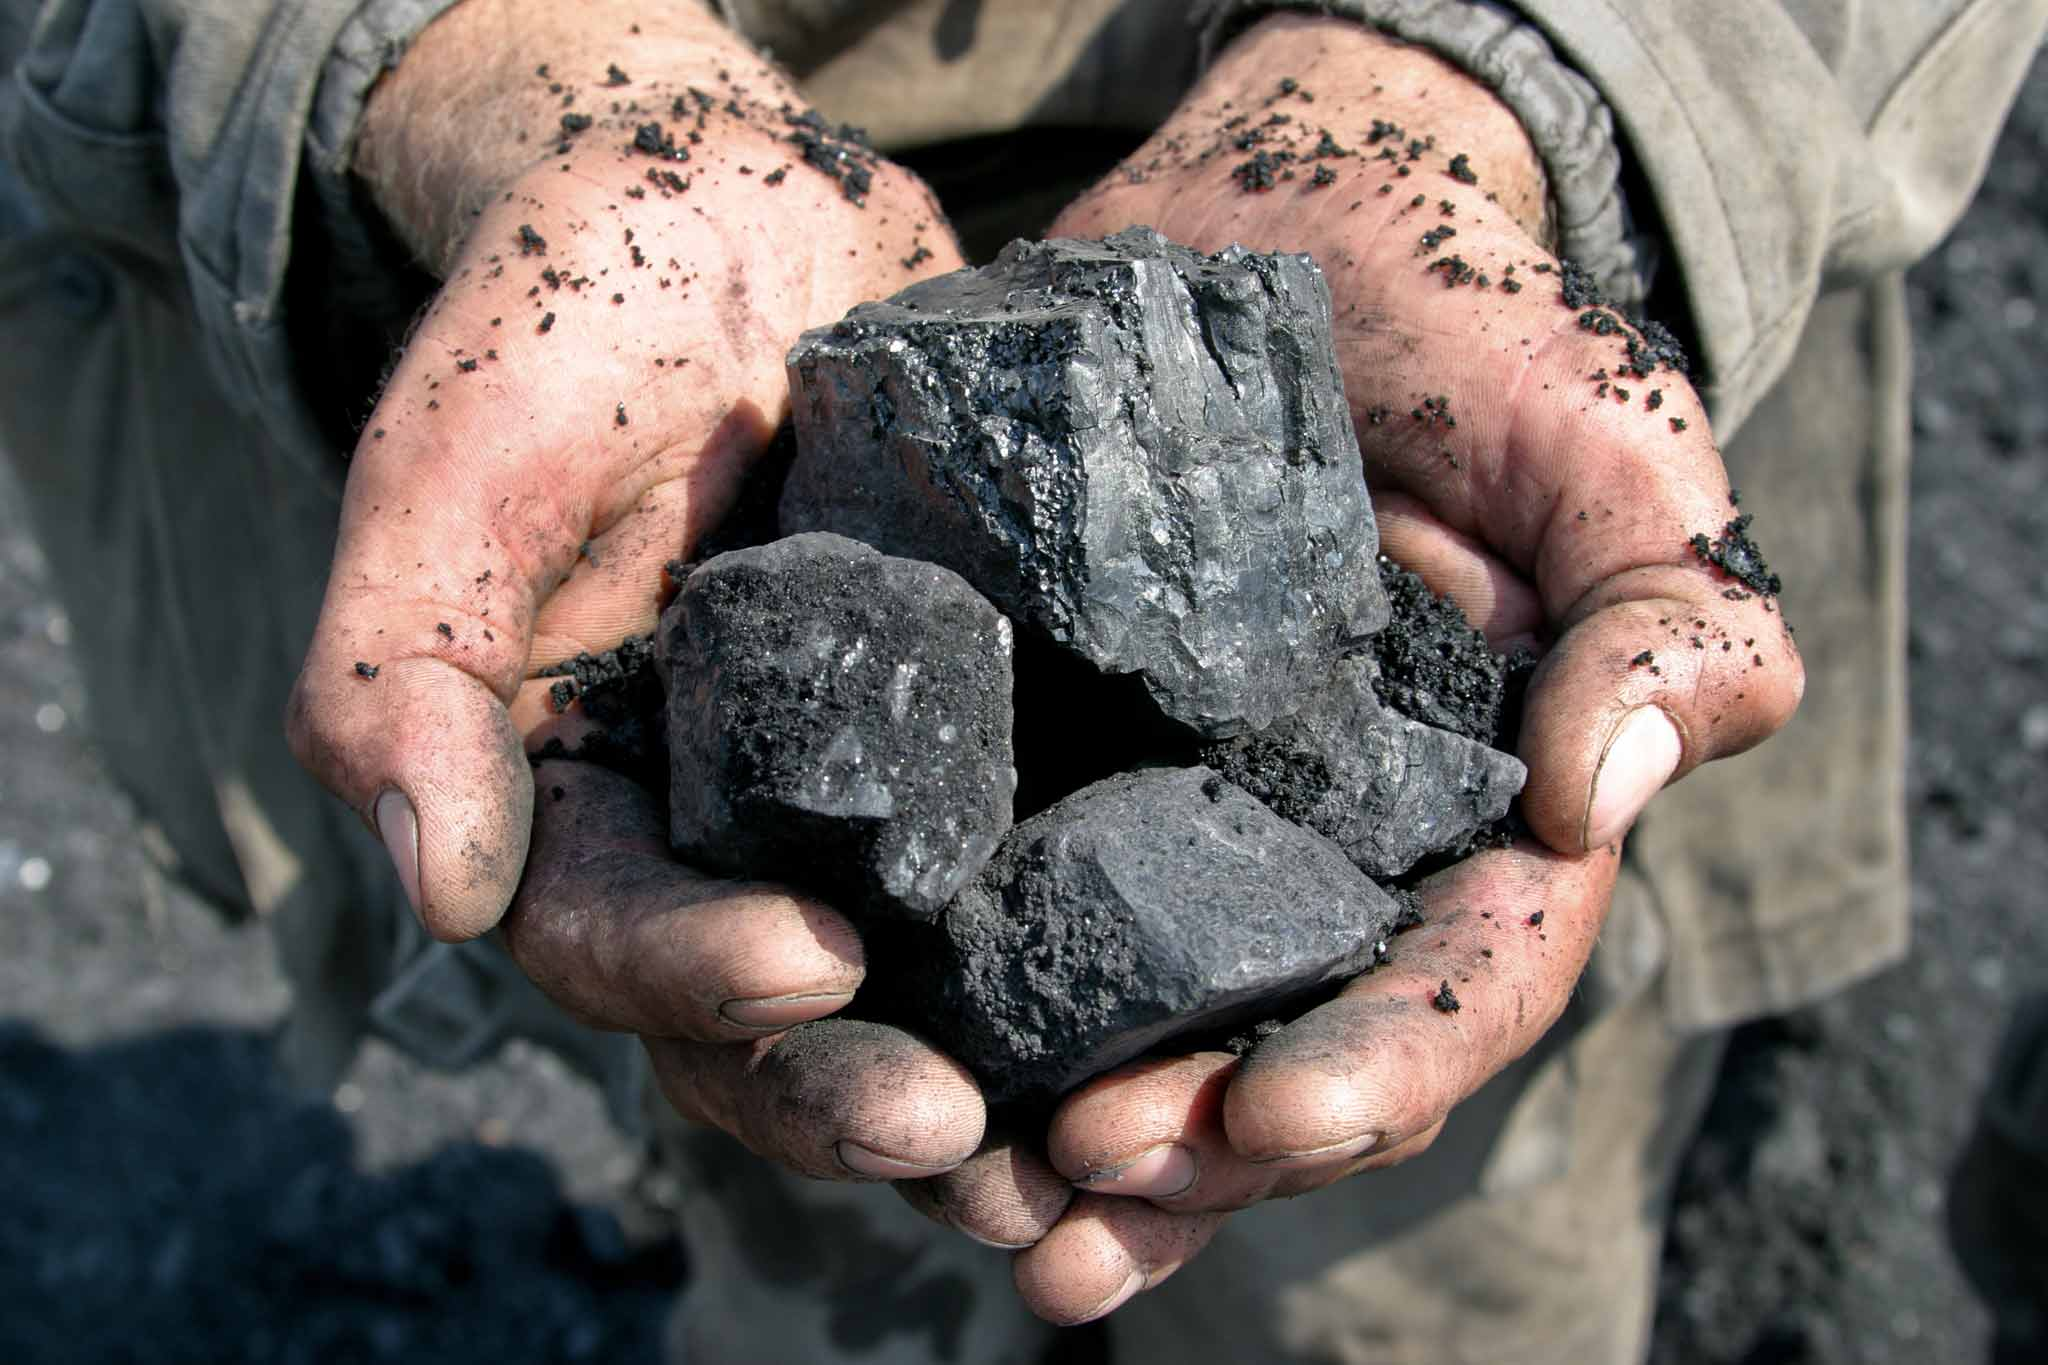 The picture shows two hands holding rocks from mining.